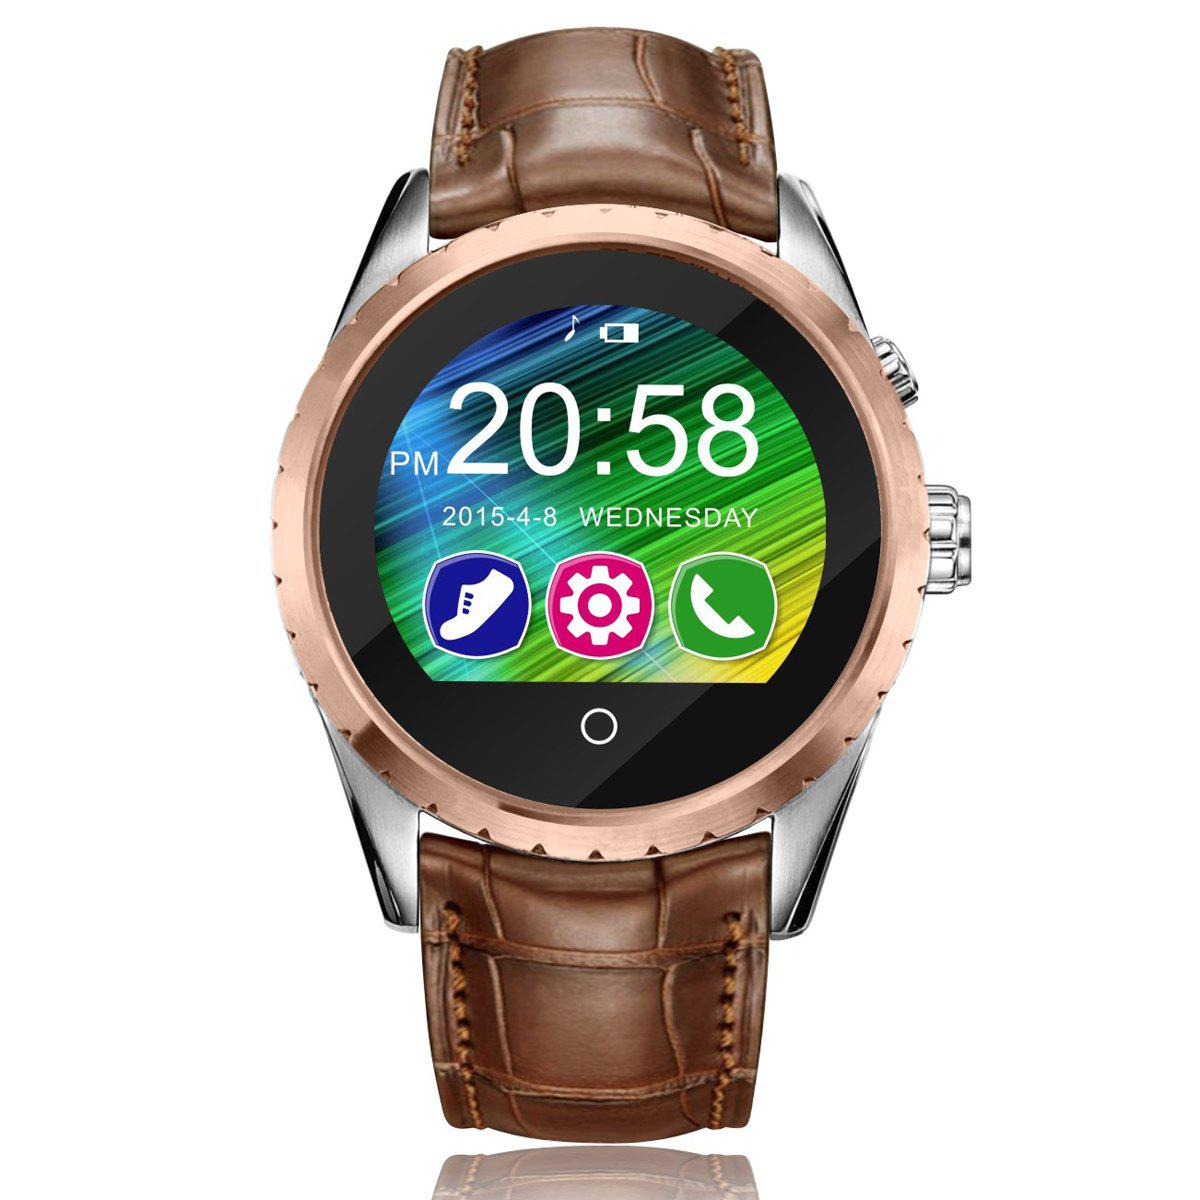 C5 Verre saphir Miroir Bluetooth 3.0 / Screen Display 4.0 montre Smart Watch IPS - Or Rose LEATHER BAND